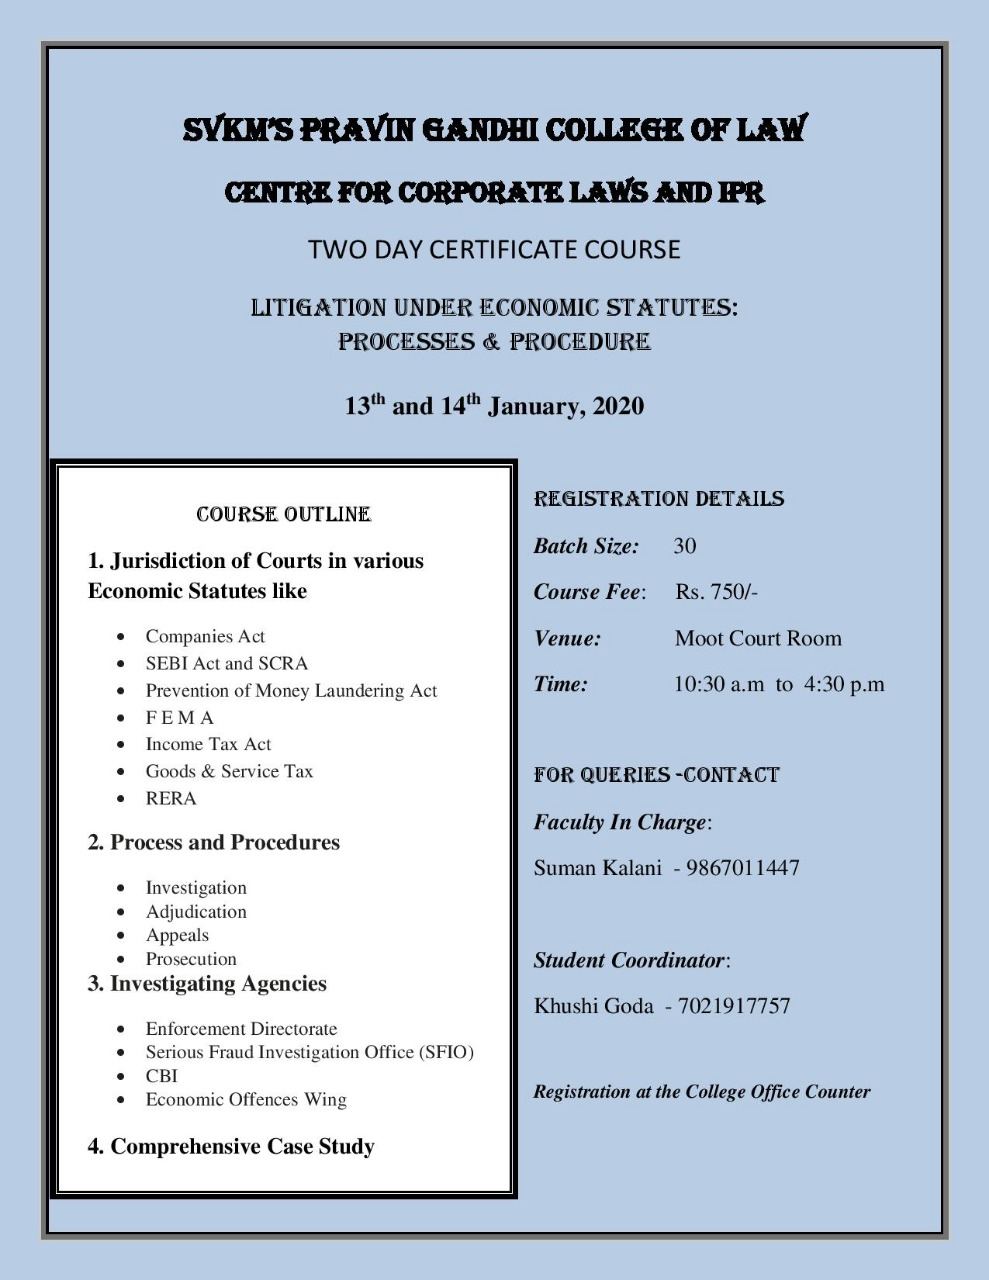 Course in Litigation under Economic Statutes at SVKM's Pravin Gandhi College of Law, Mumbai